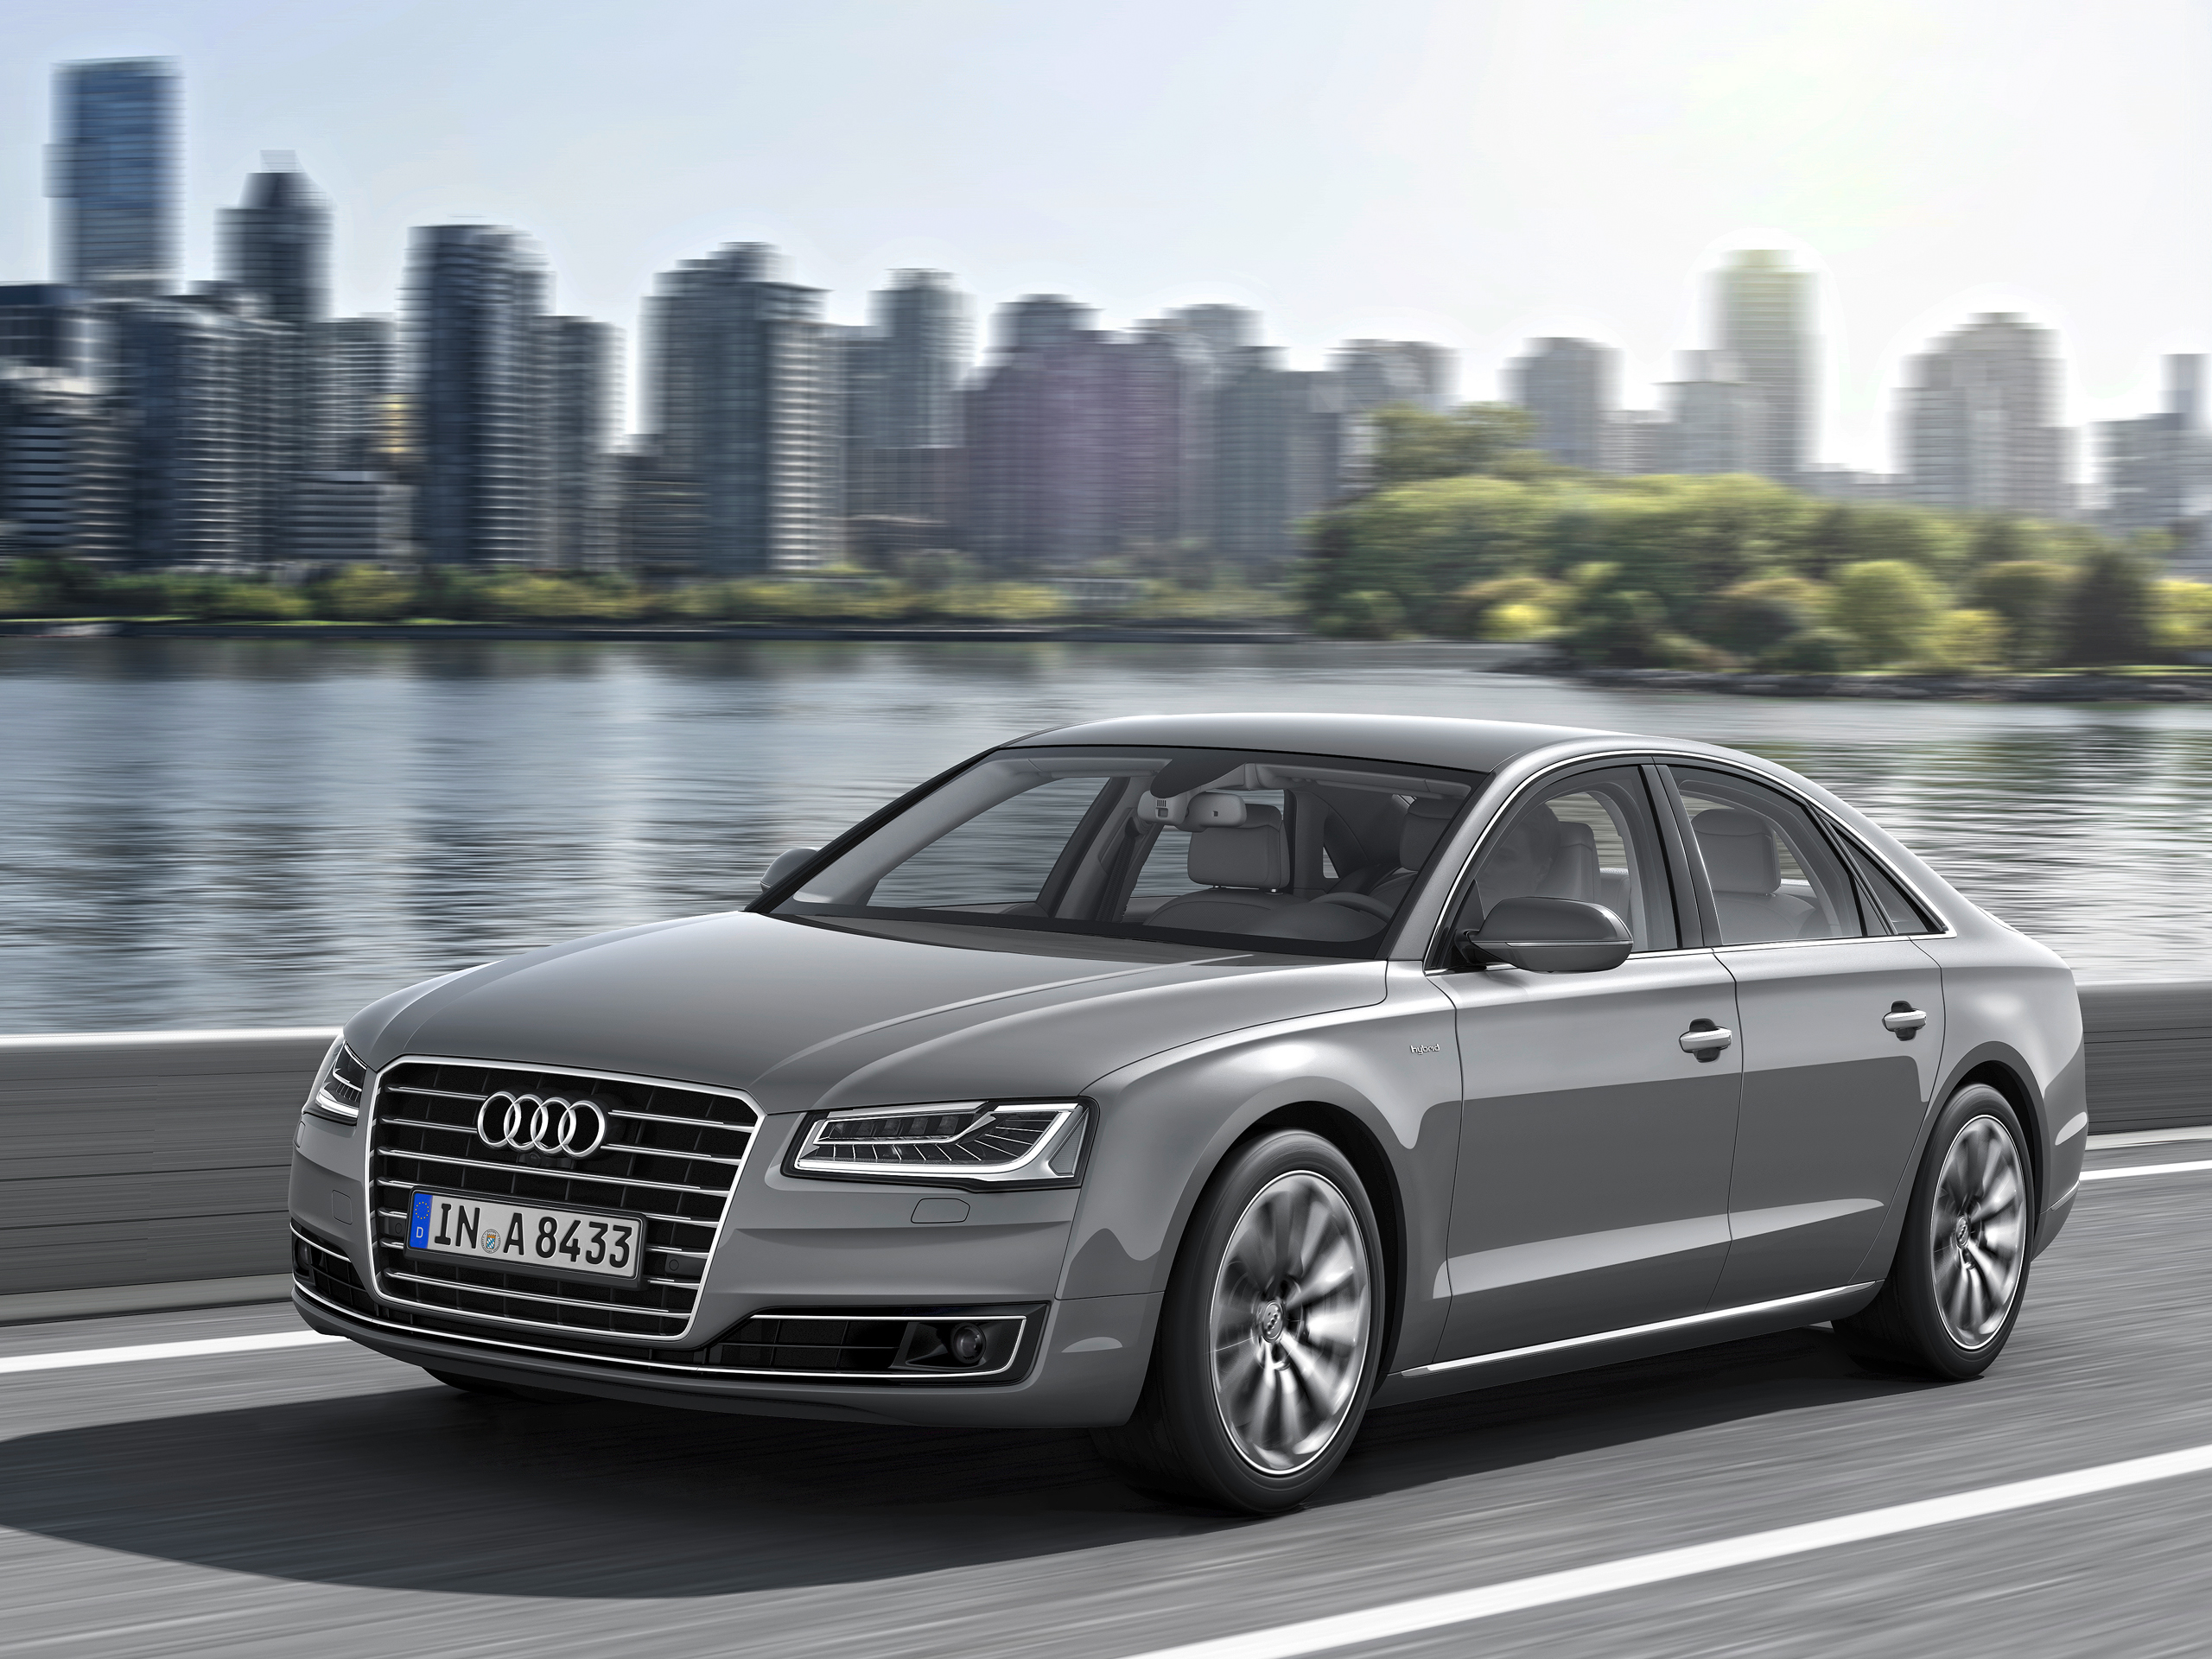 Audi A8 Specs and Review